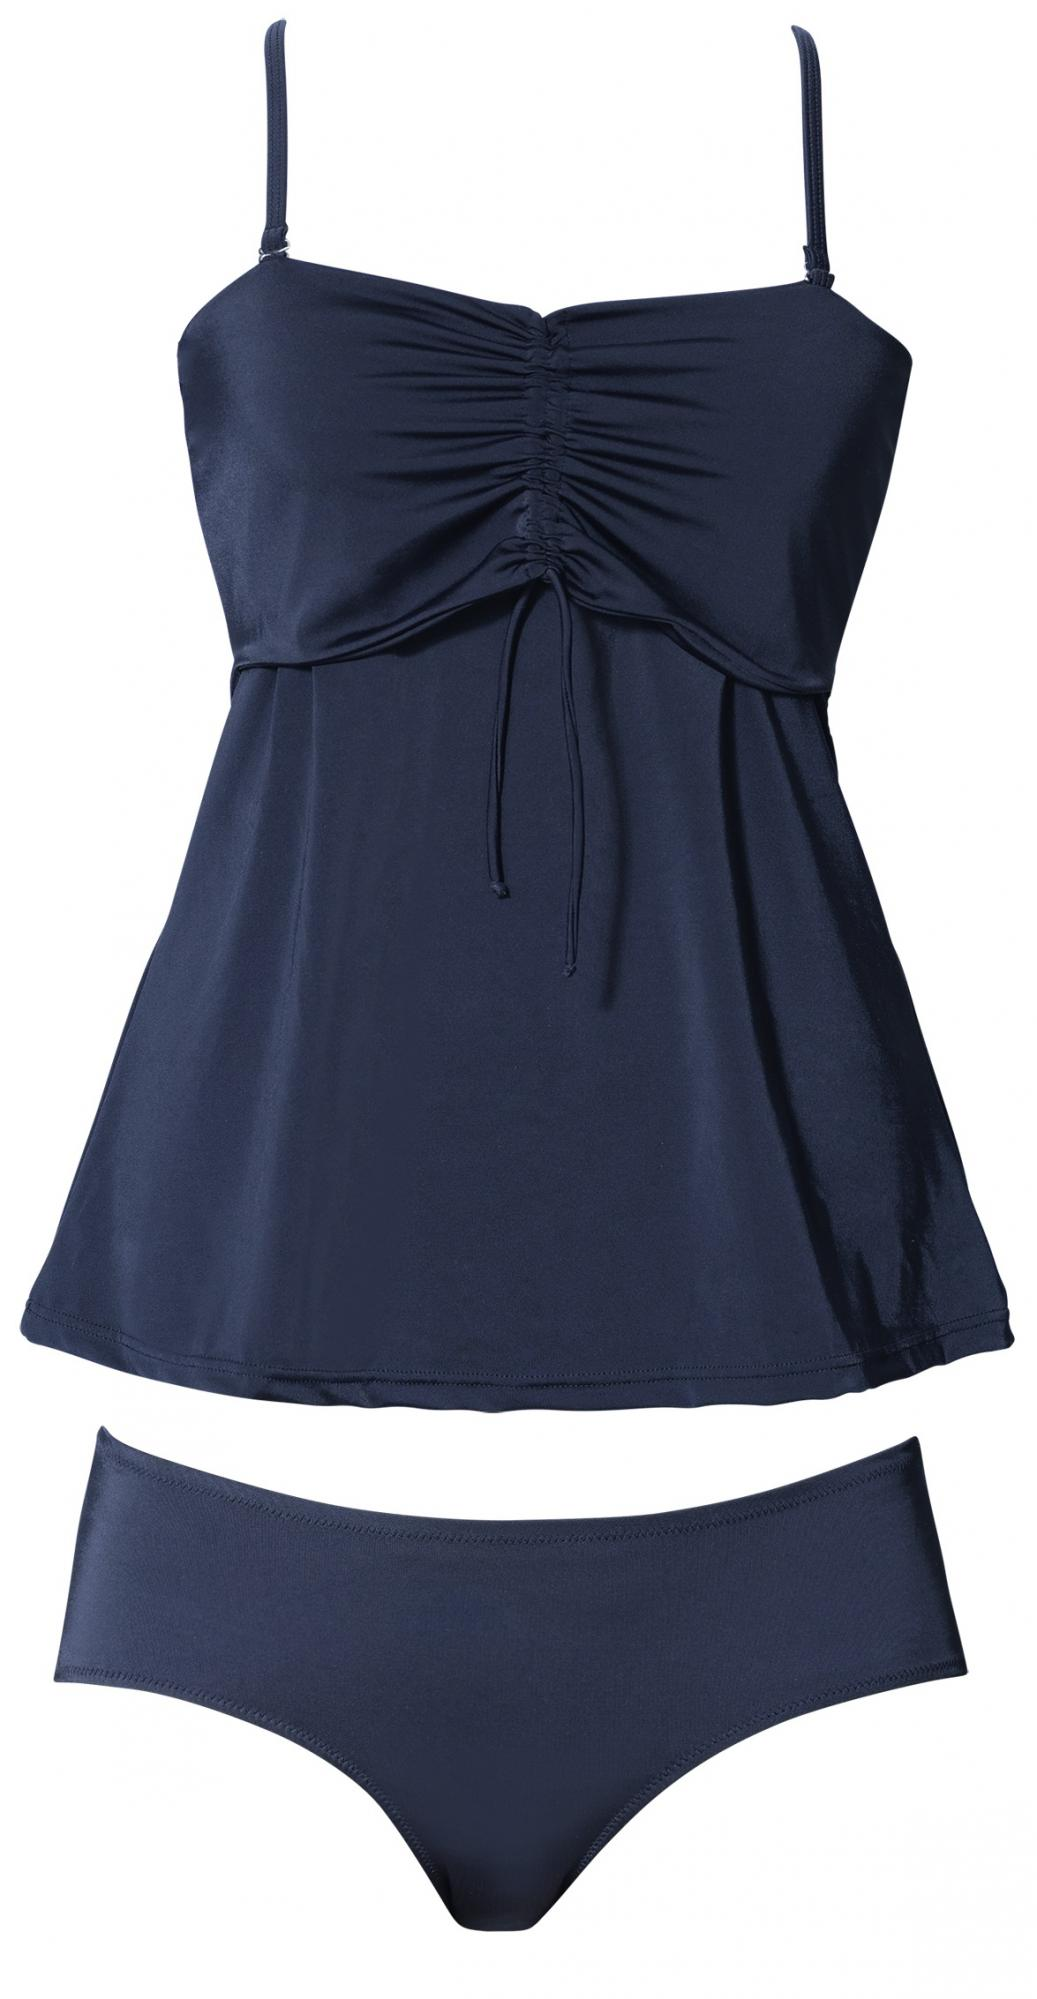 boob-design-nursing-tankini-blue-plain.jpg